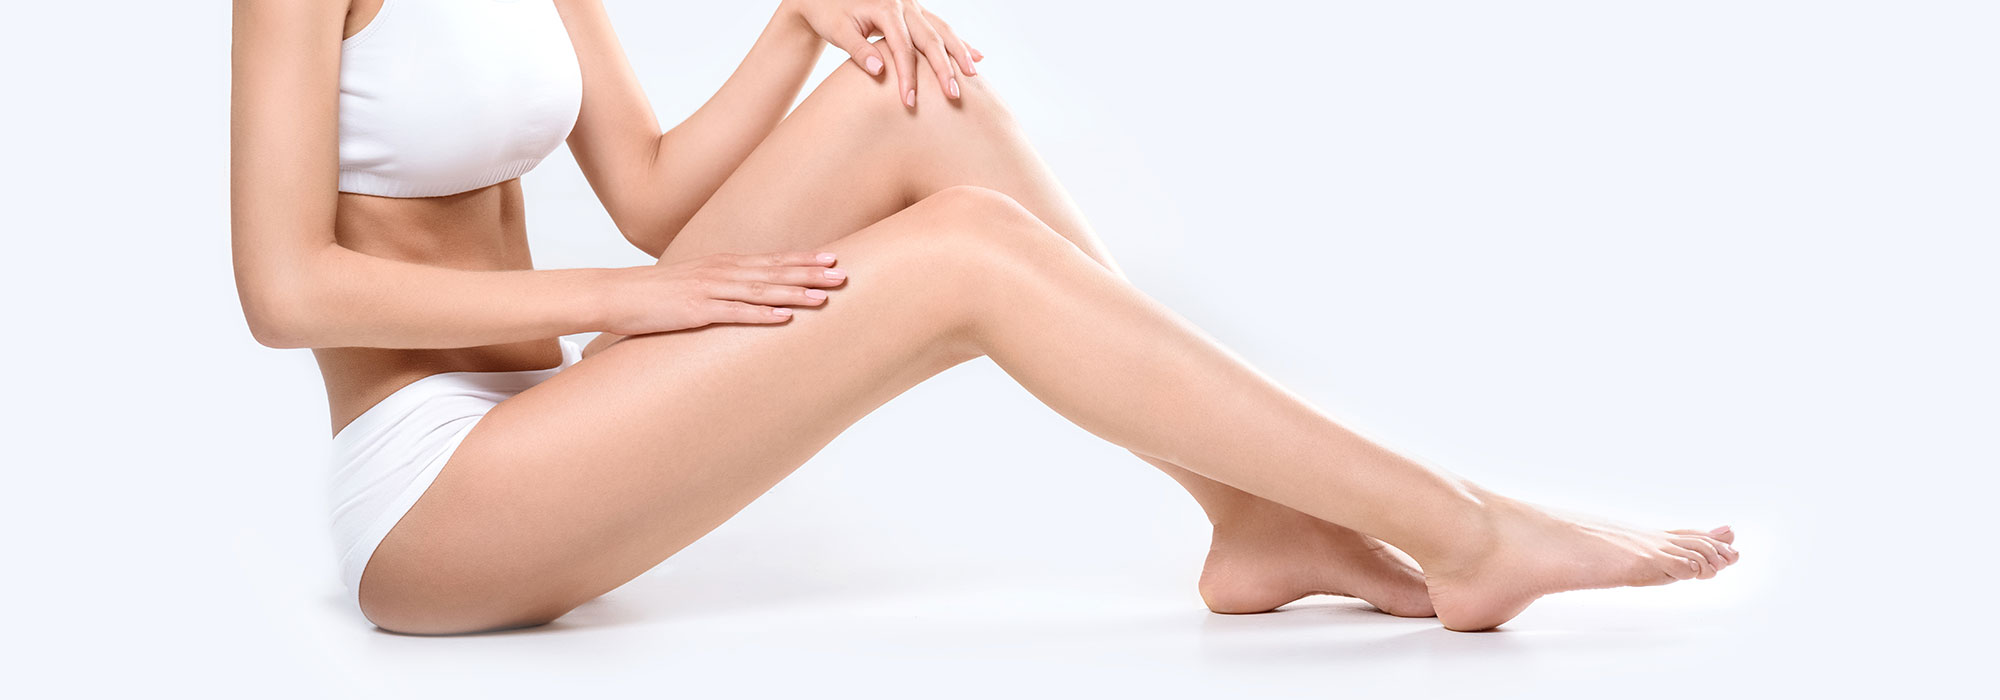 permanent hair removal with Sugaring from EpilaDerm